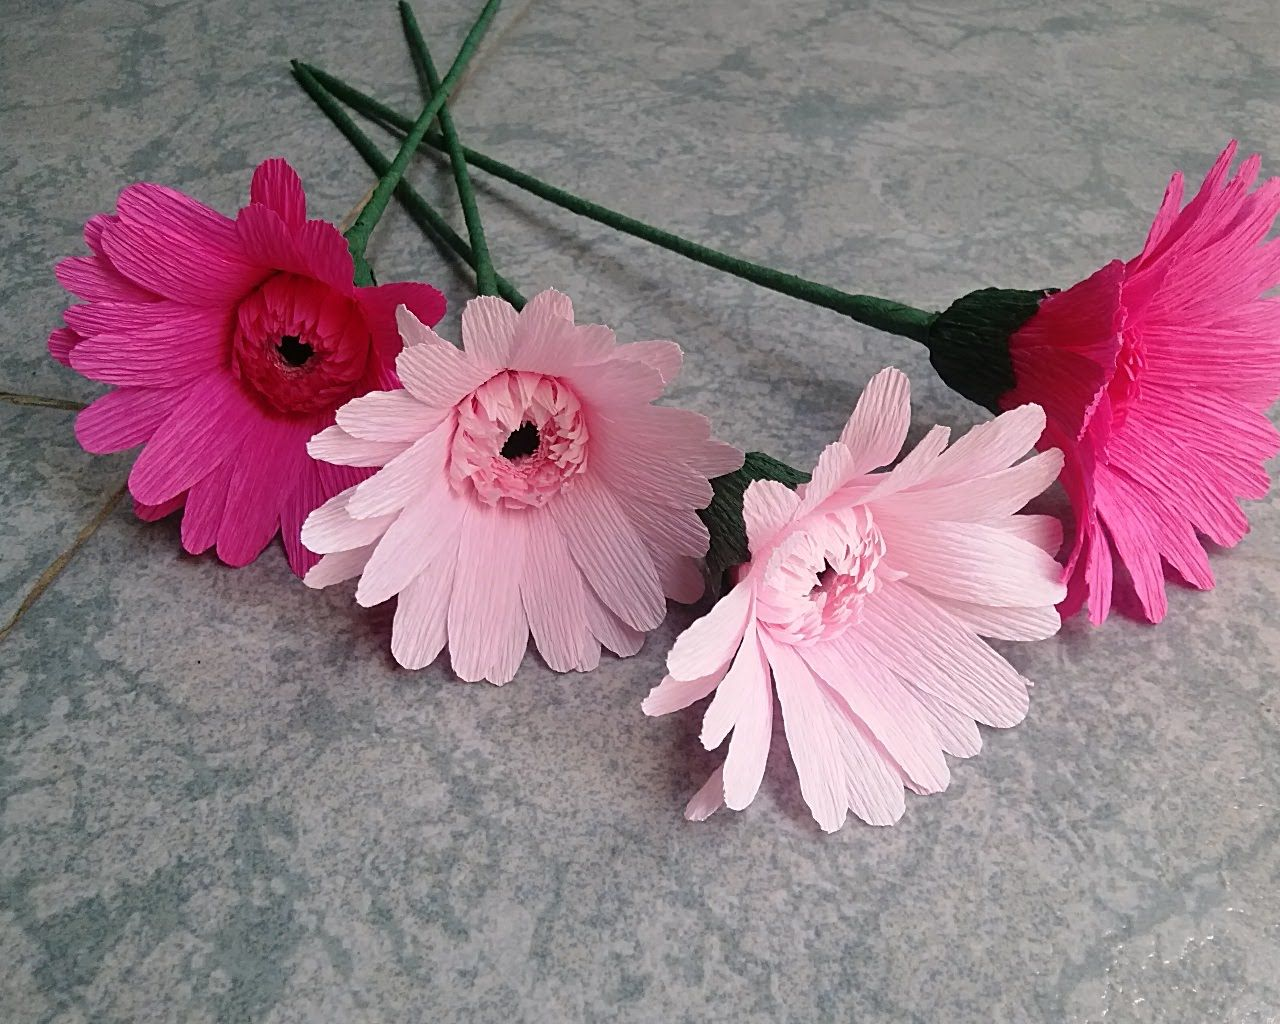 Lots of video tutorial how to make paper flower step by step here lots of video tutorial how to make paper flower step by step here https mightylinksfo